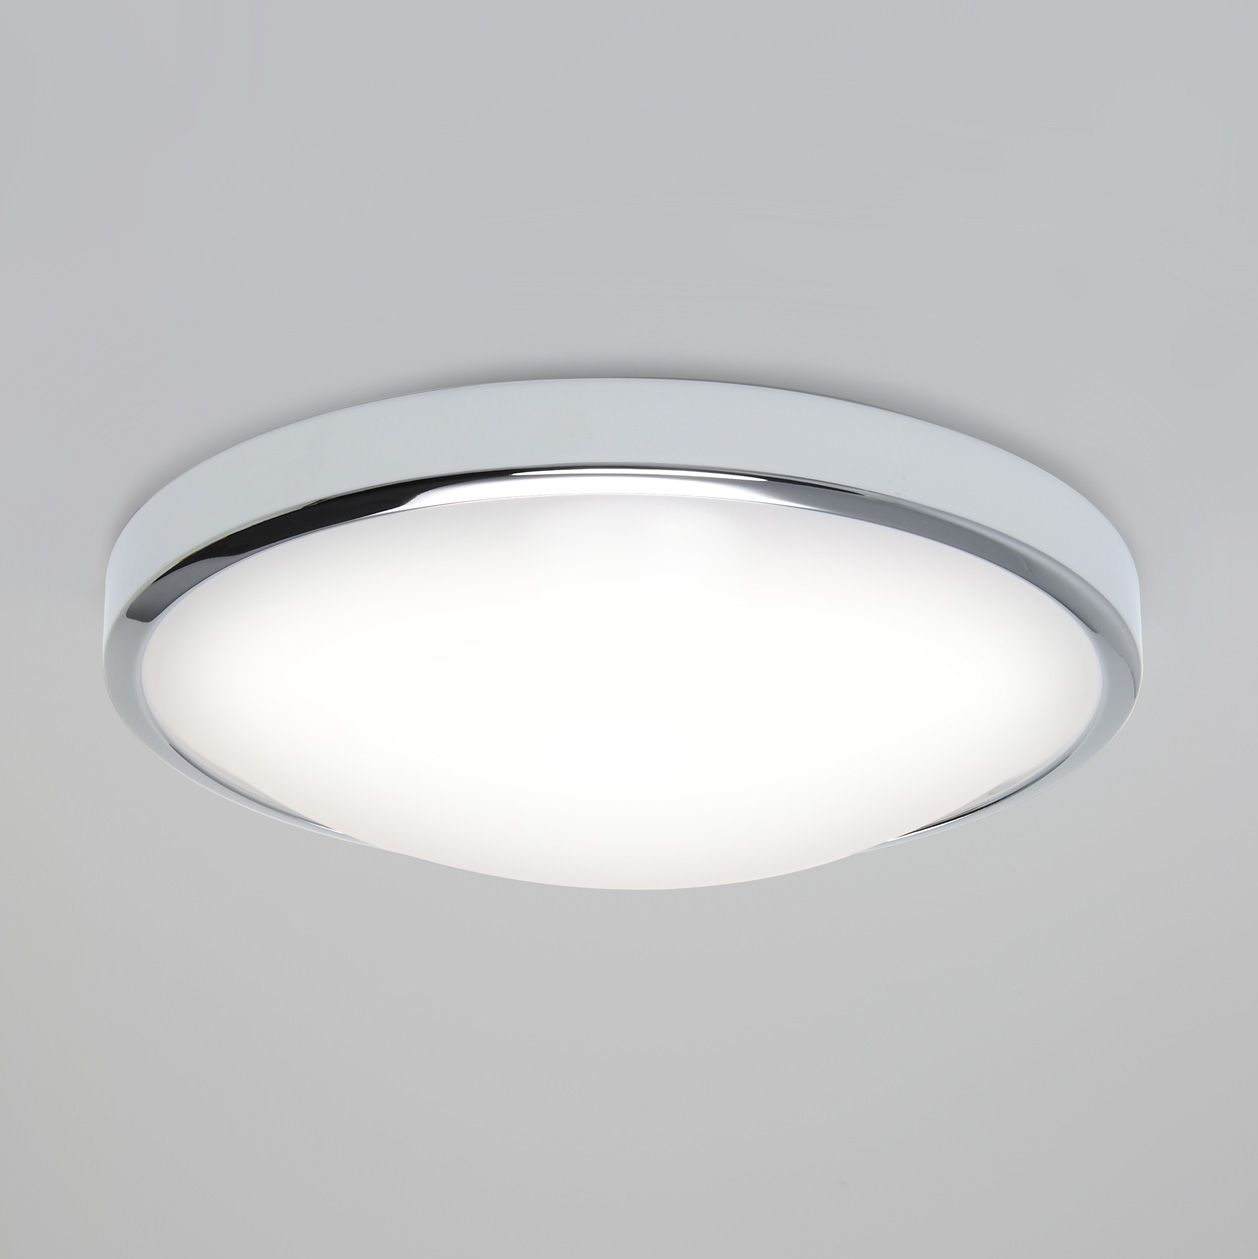 Astro Osaka LED round bathroom ceiling wall light chrome 16W warm white IP44